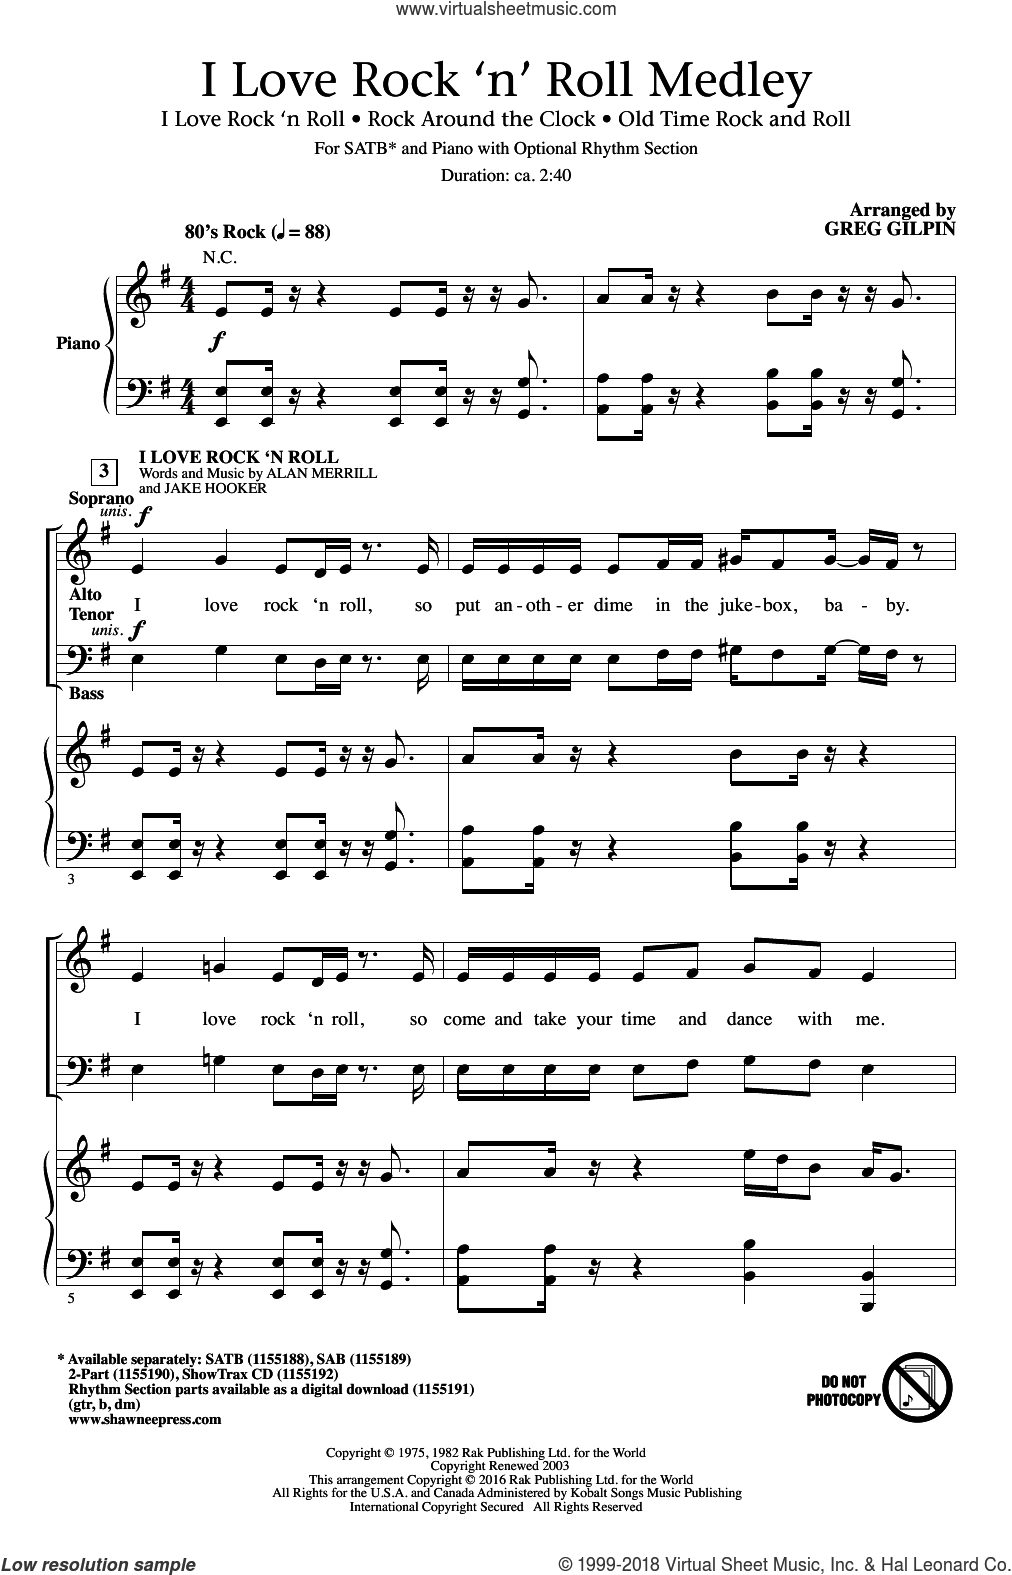 I Love Rock 'N Roll sheet music for choir and piano (SATB) by Greg Gilpin, George Jackson, Joan Jett & The Blackhearts, Max C. Freedman, Tom Jones and Jake Hooker. Score Image Preview.